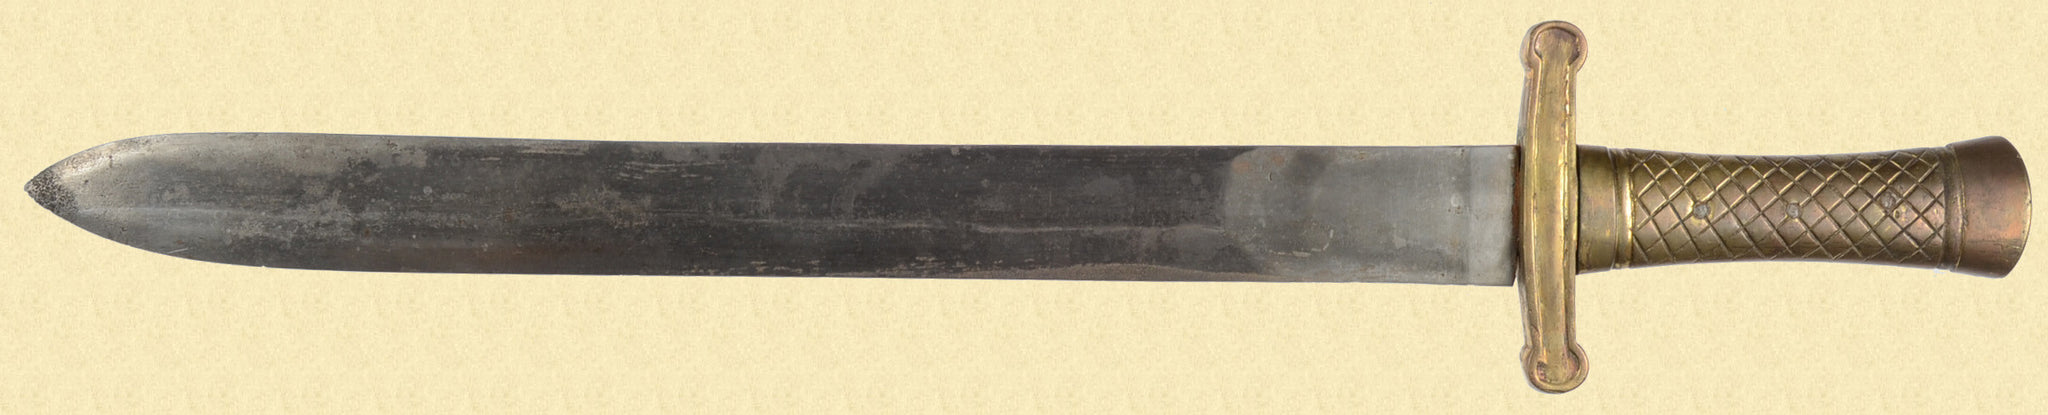 UNKNOWN SHORT SWORD